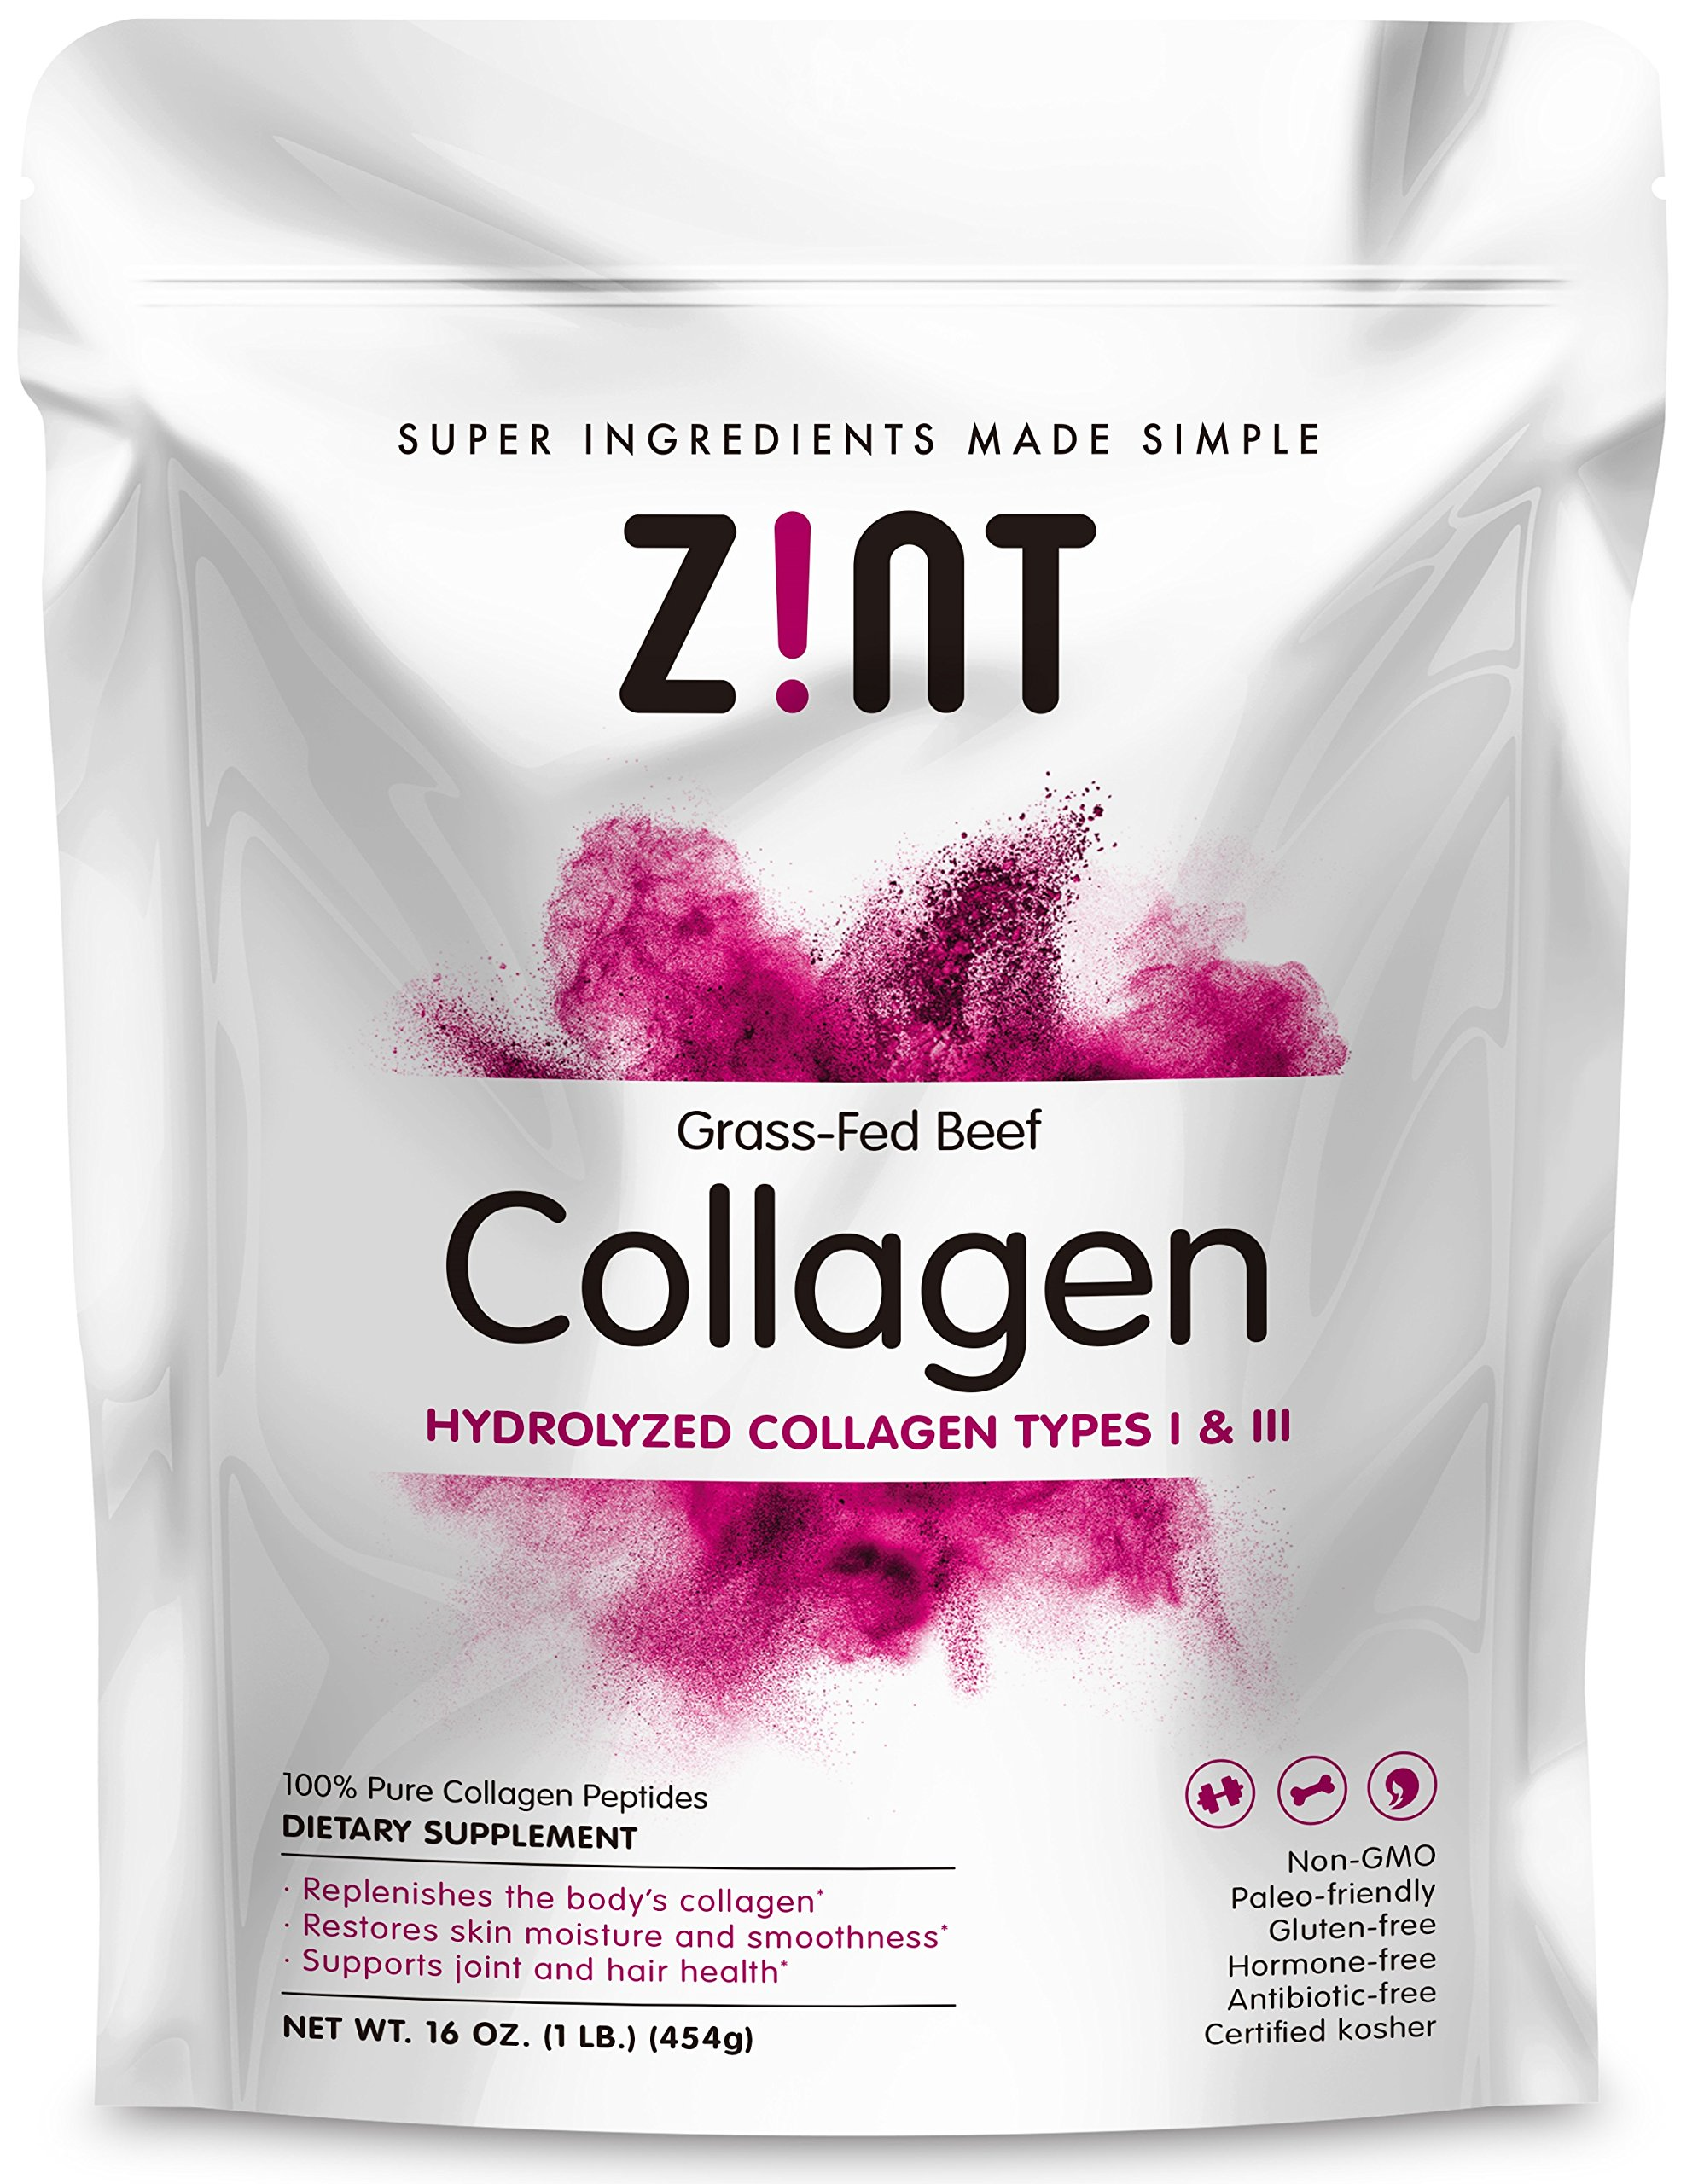 Collagen Powder Collagen Peptides (16 oz): Anti Aging Hydrolyzed Beauty Protein Powder Supplement for Women - For Skin, Hair & Nails